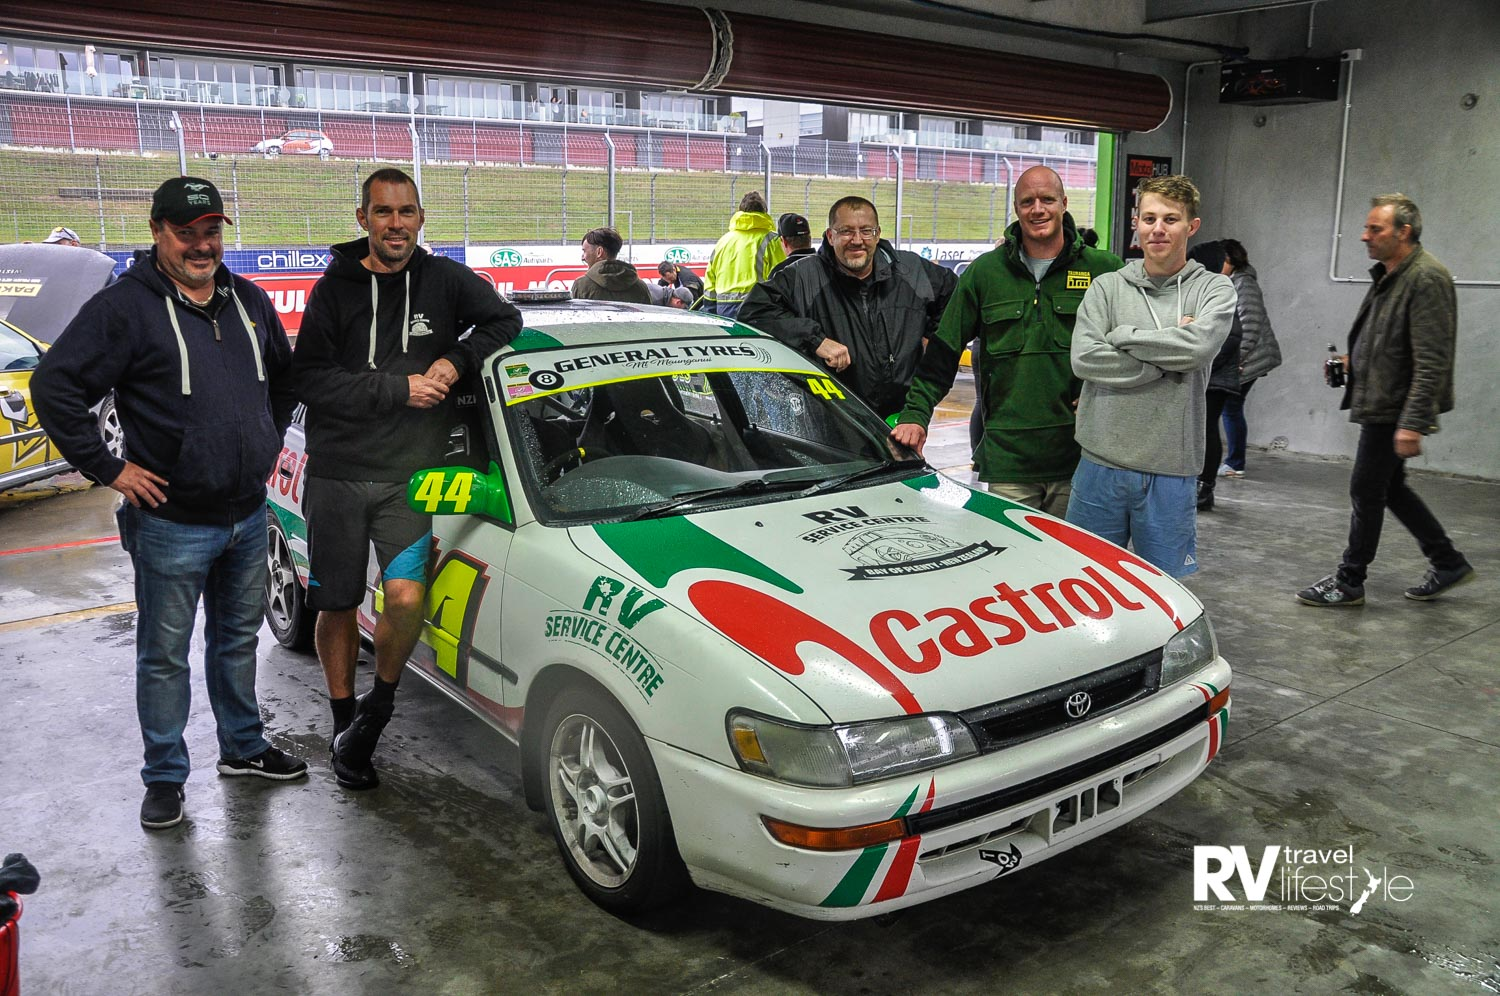 The RV Service Centre race team, at Hampton Downs for a charity 24 hour race. A team activity for Country RV owner Rob Axton and his team in the service centre - nice team building activity